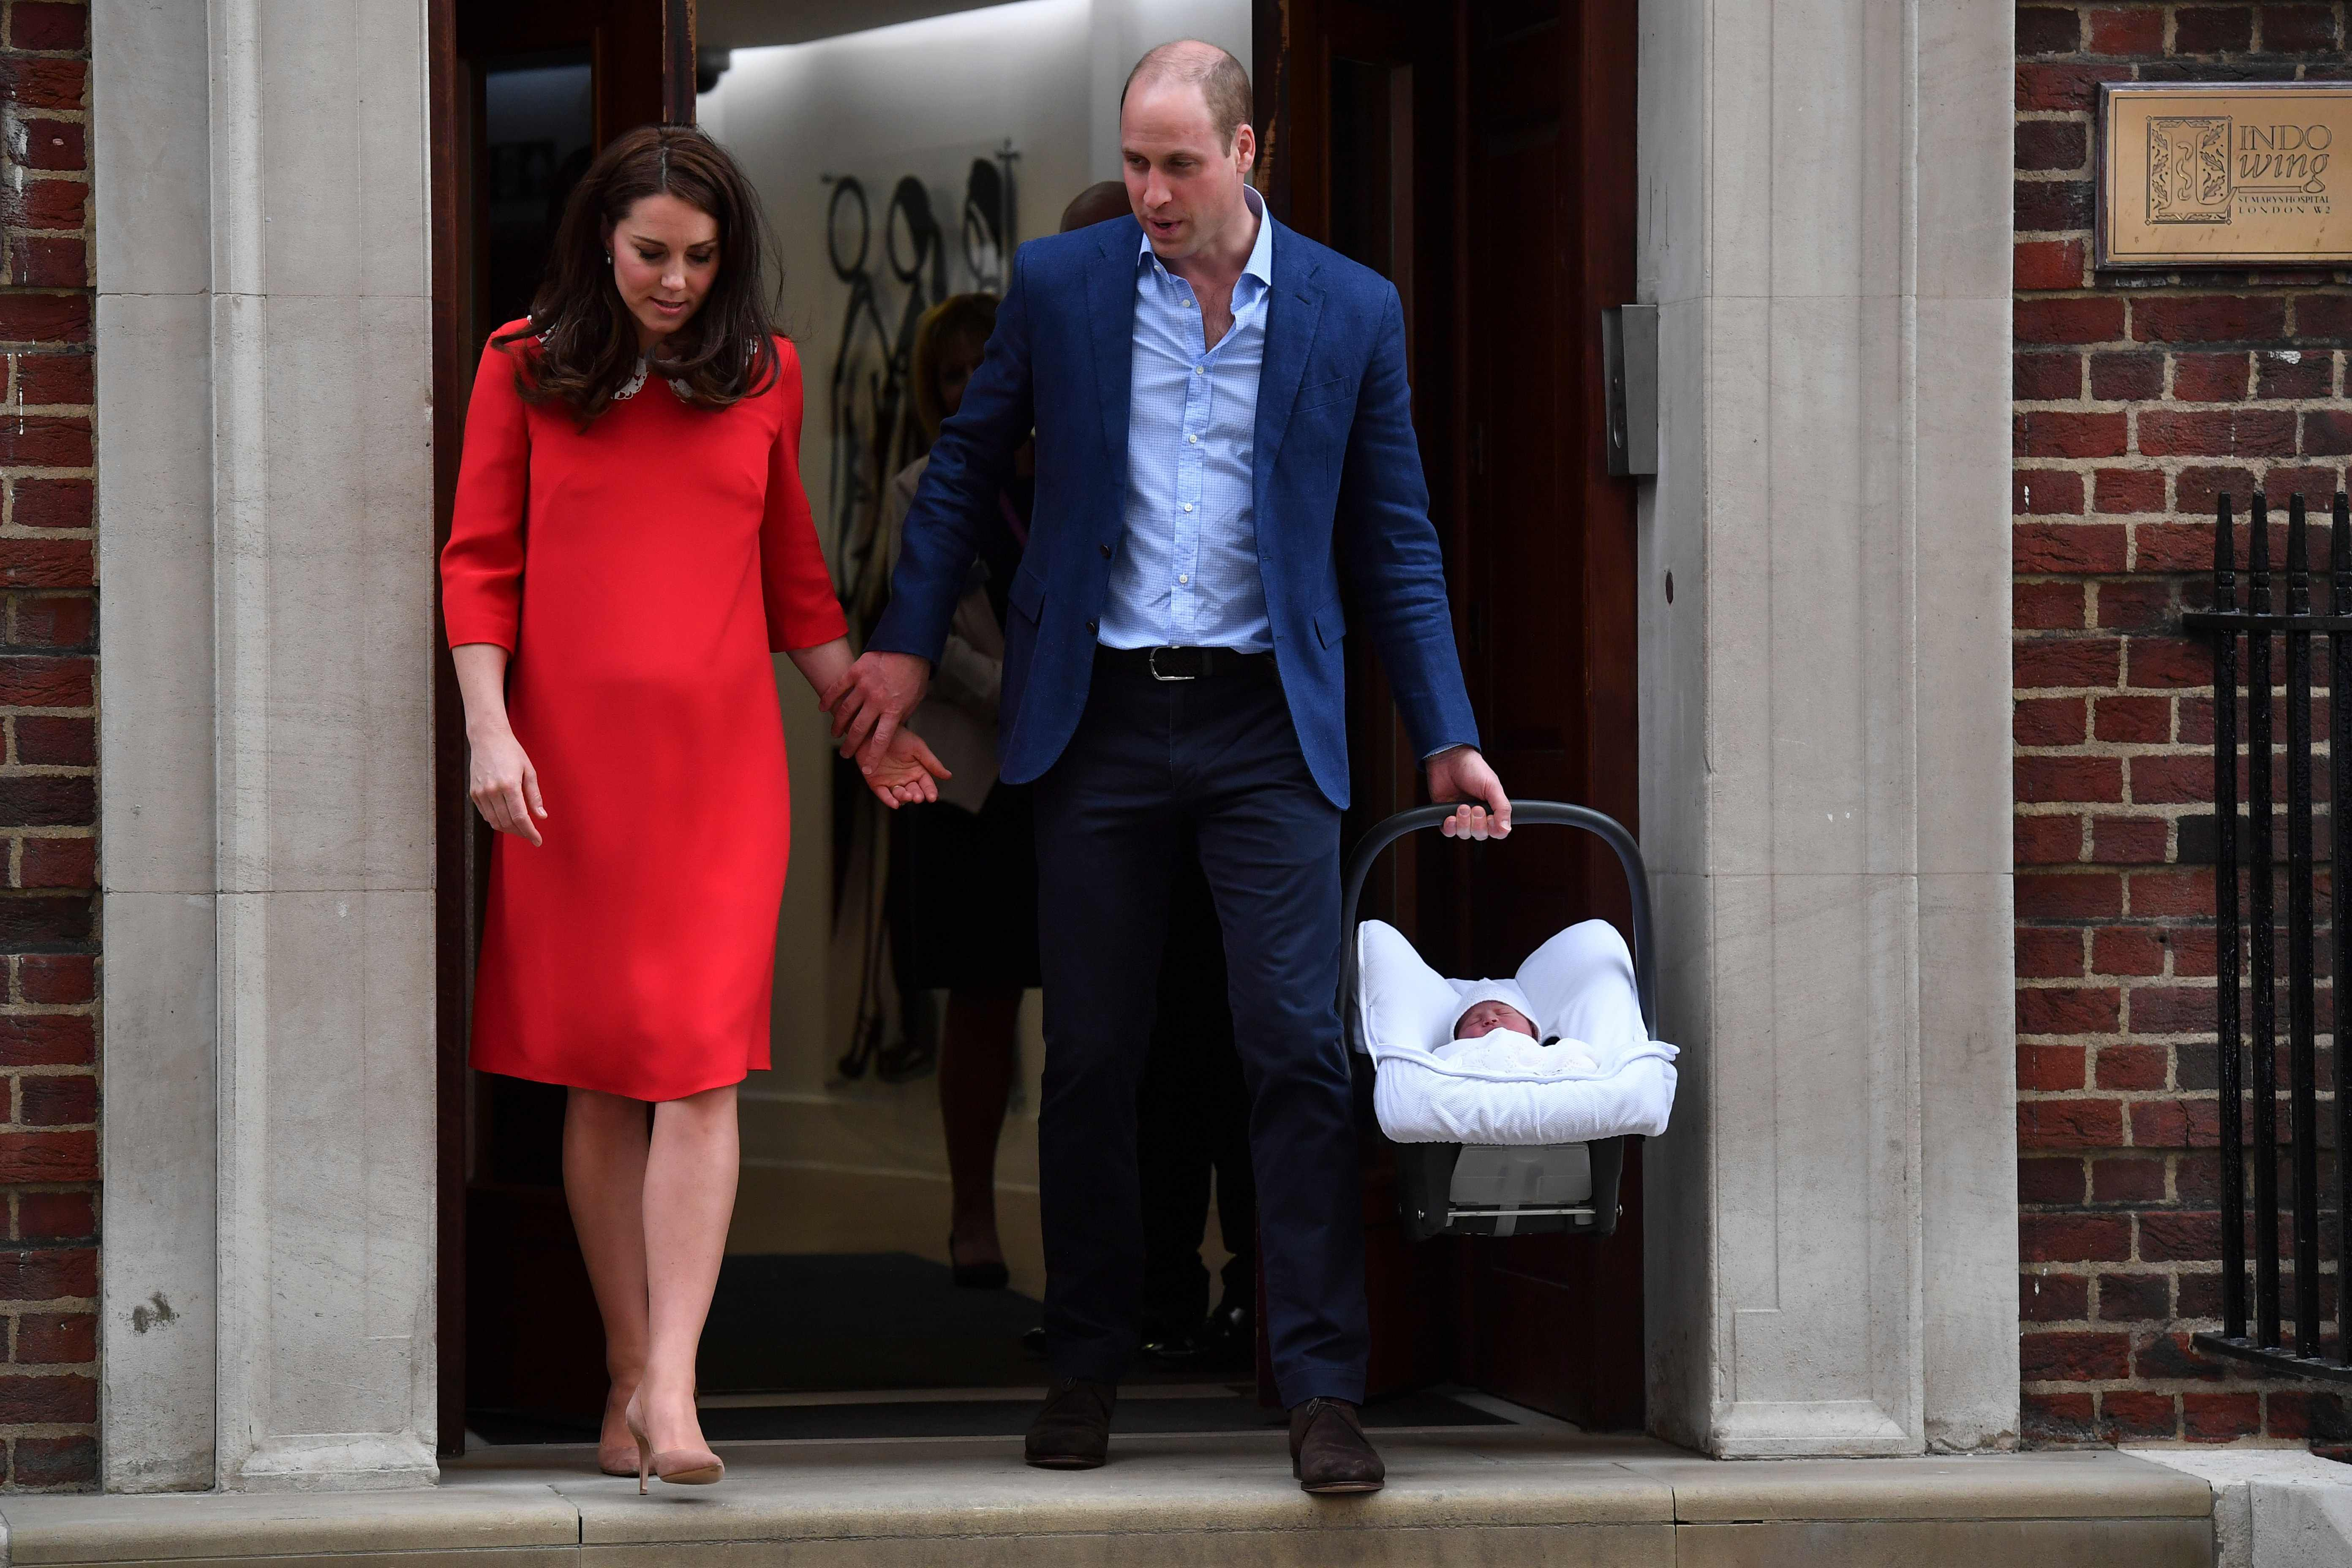 Kate left the hospital in stilettos less than 7 hours after